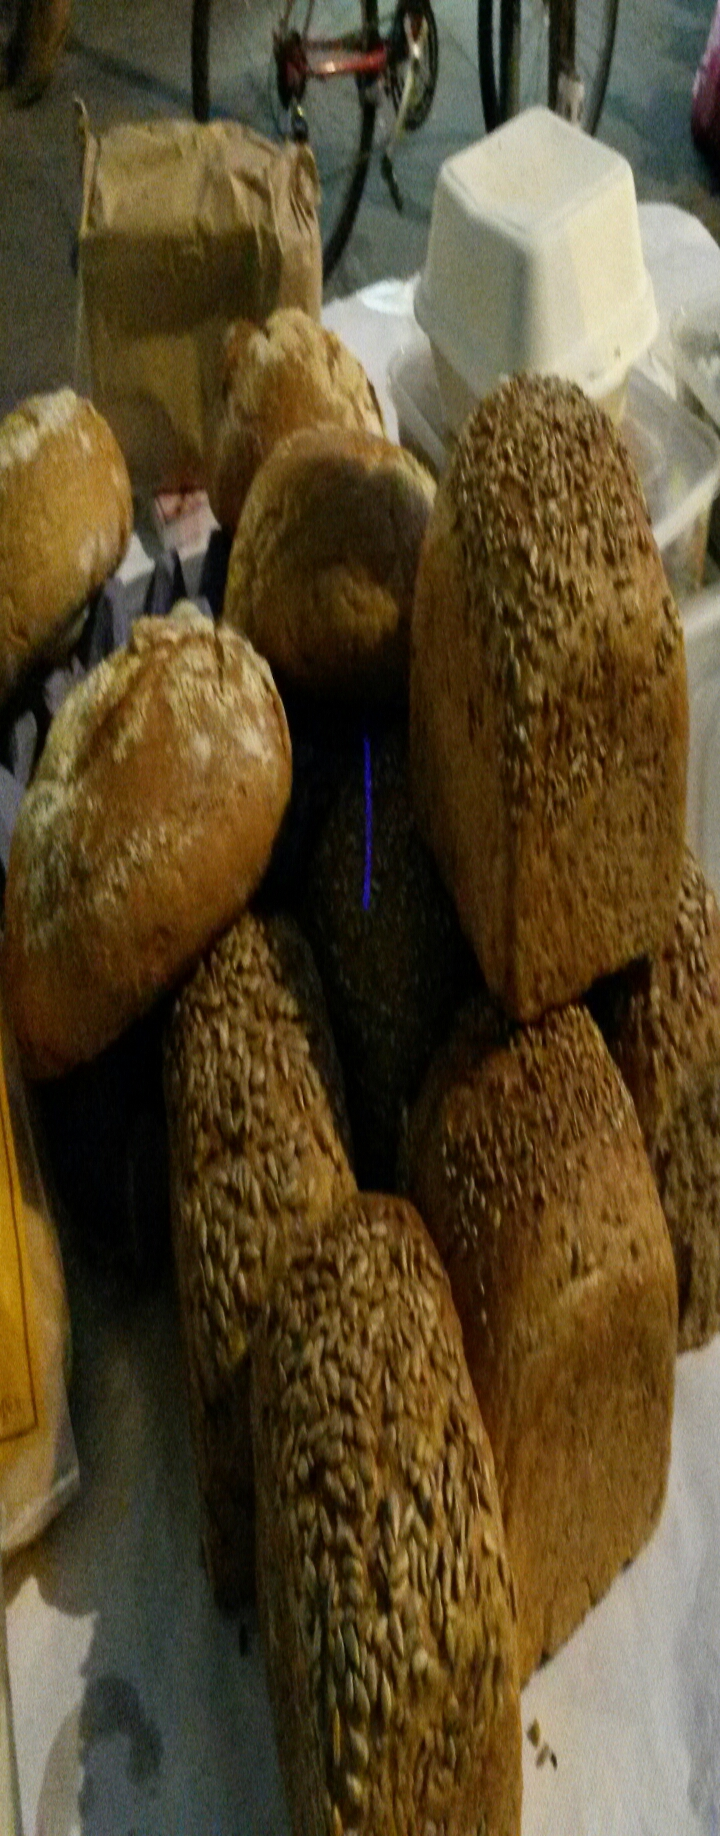 Over 4kg of various breads